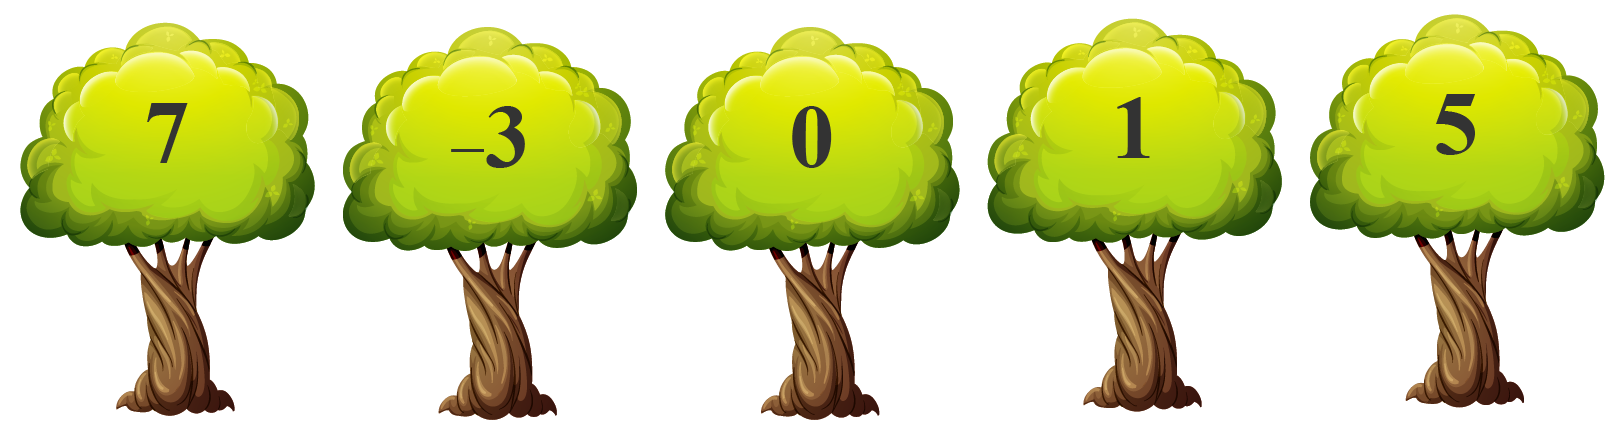 5 trees with numbers marked on them